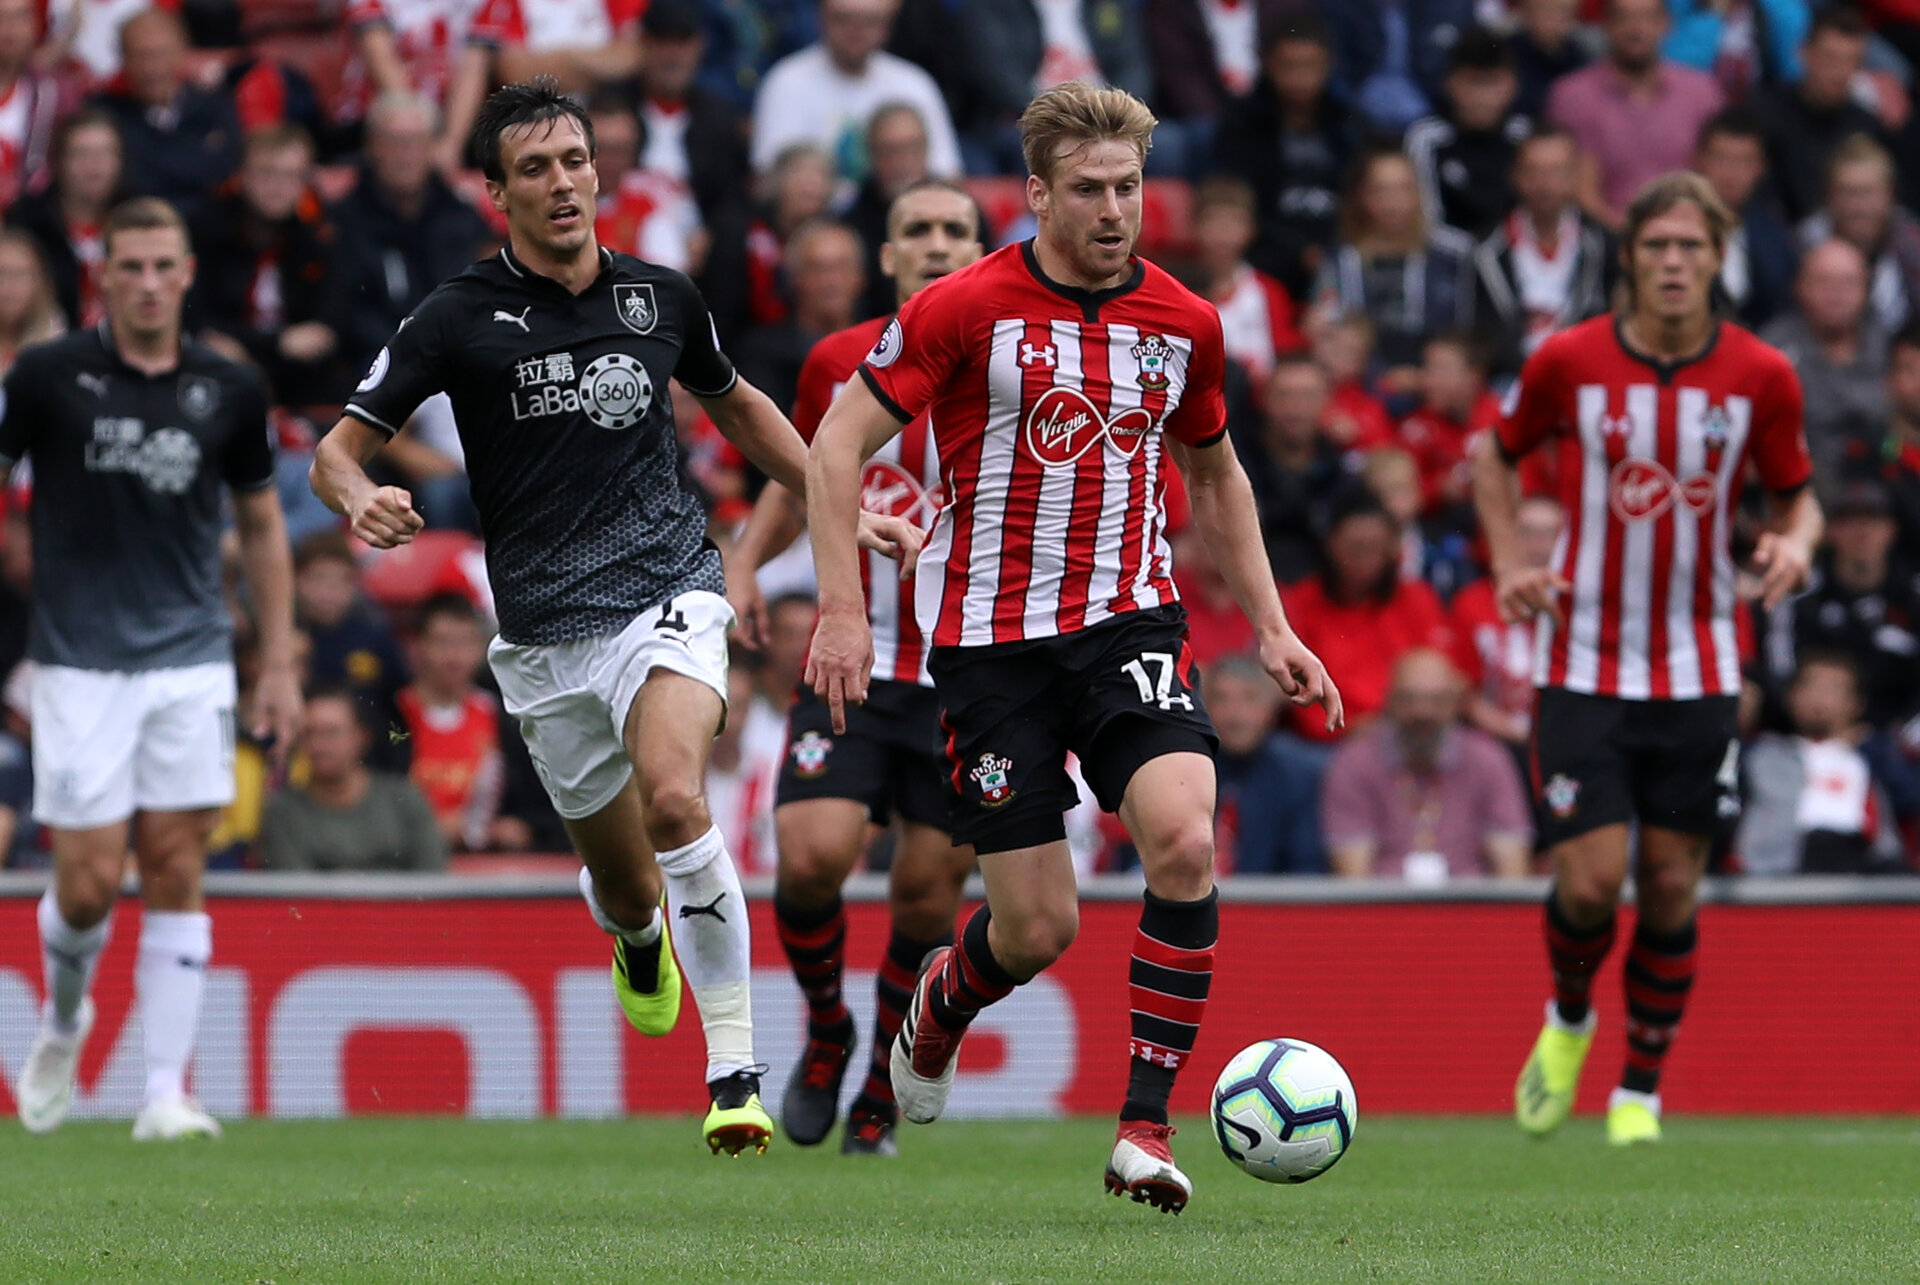 SOUTHAMPTON, ENGLAND - AUGUST 12: Stuart Armstrong of Southampton during the Premier League match between Southampton FC and Burnley FC at St Mary's Stadium on August 12, 2018 in Southampton, United Kingdom. (Photo by Chris Moorhouse/Southampton FC via Getty Images)